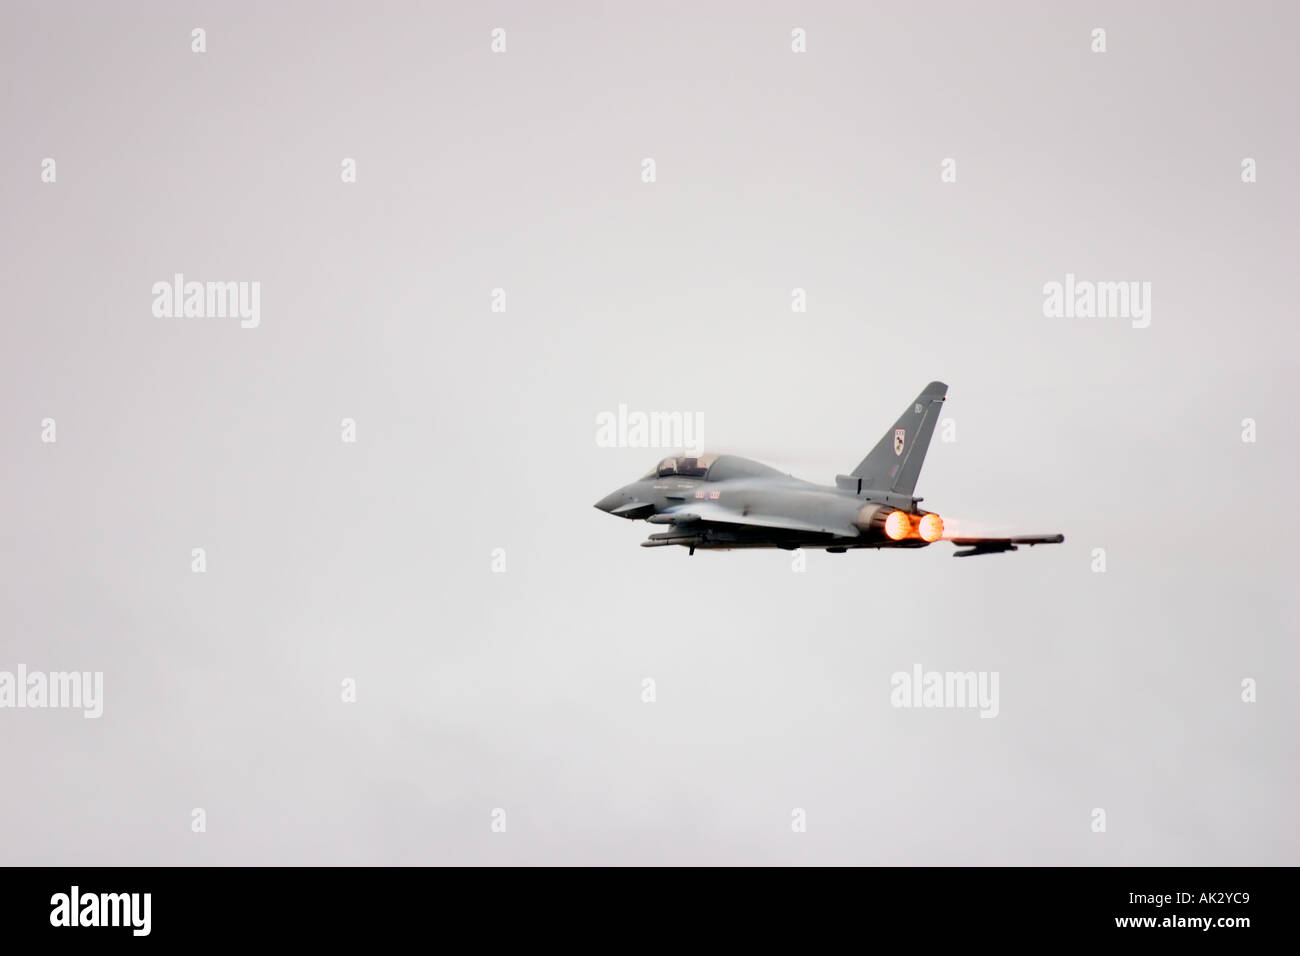 RAF Typhoon T1 29 R Squadron Eurofighter aircraft high speed pass on full afterburner with air condensation bufetting Stock Photo